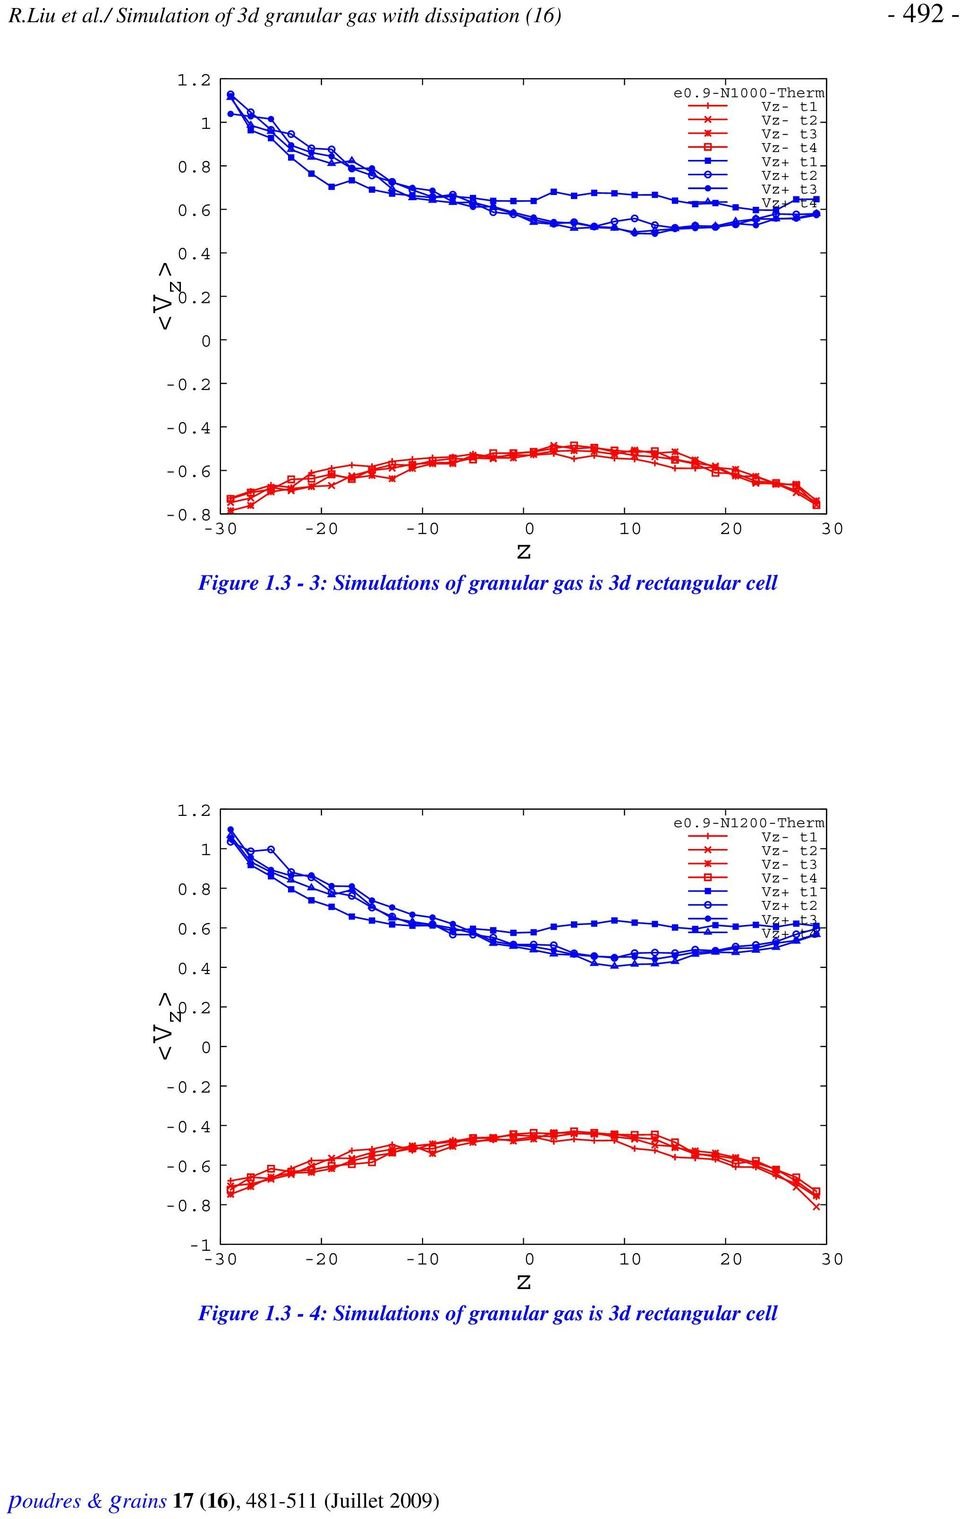 3-3: Simulations of granular gas is 3d rectangular cell.2.8.6.4 e.